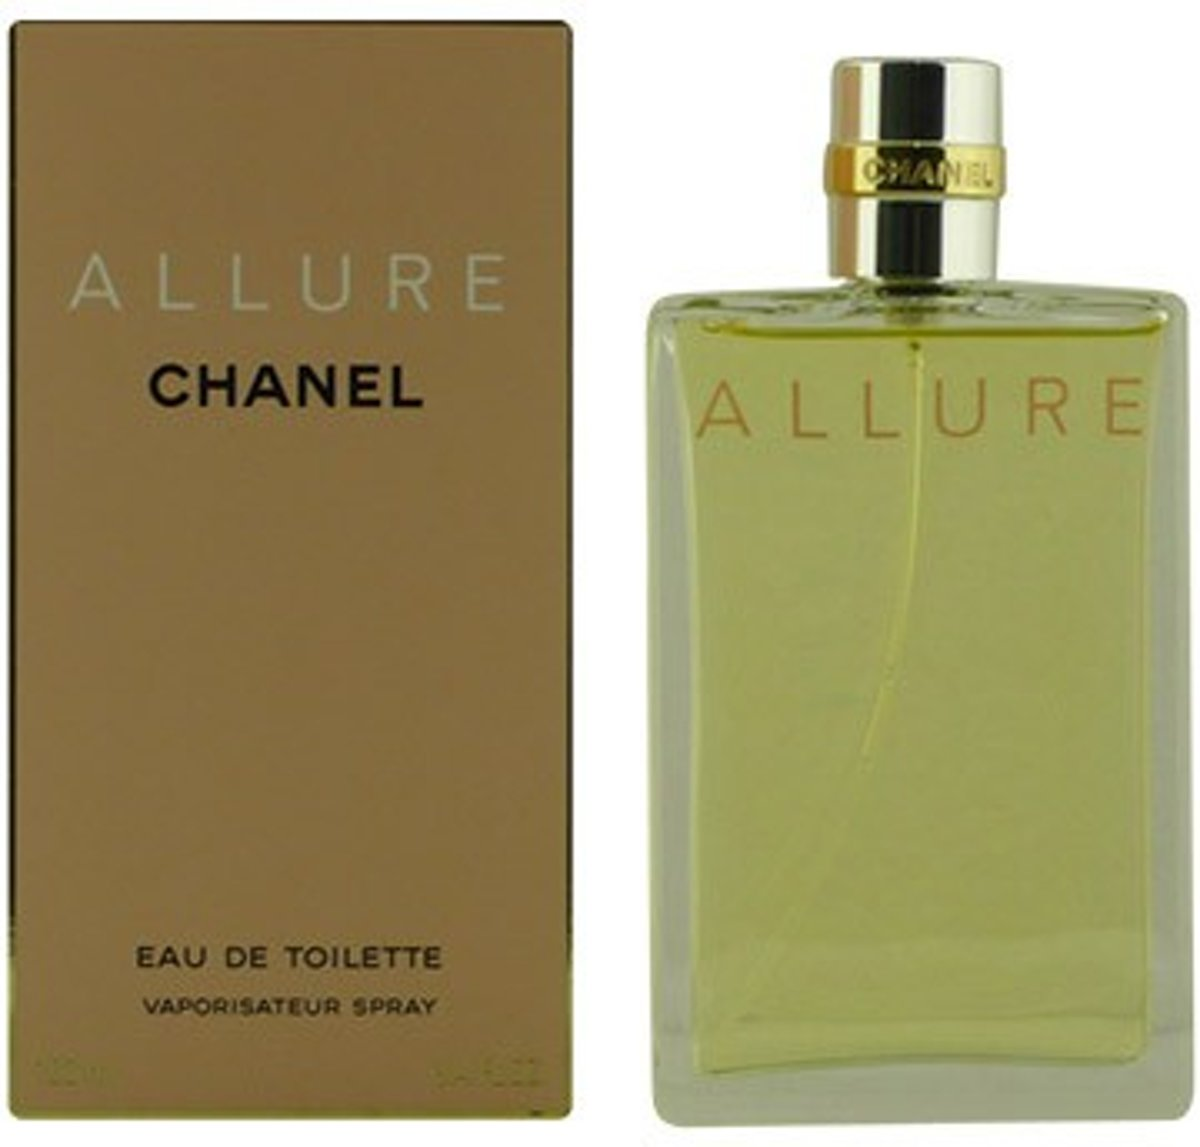 MULTI BUNDEL 2 stuks ALLURE Eau de Toilette Spray 100 ml